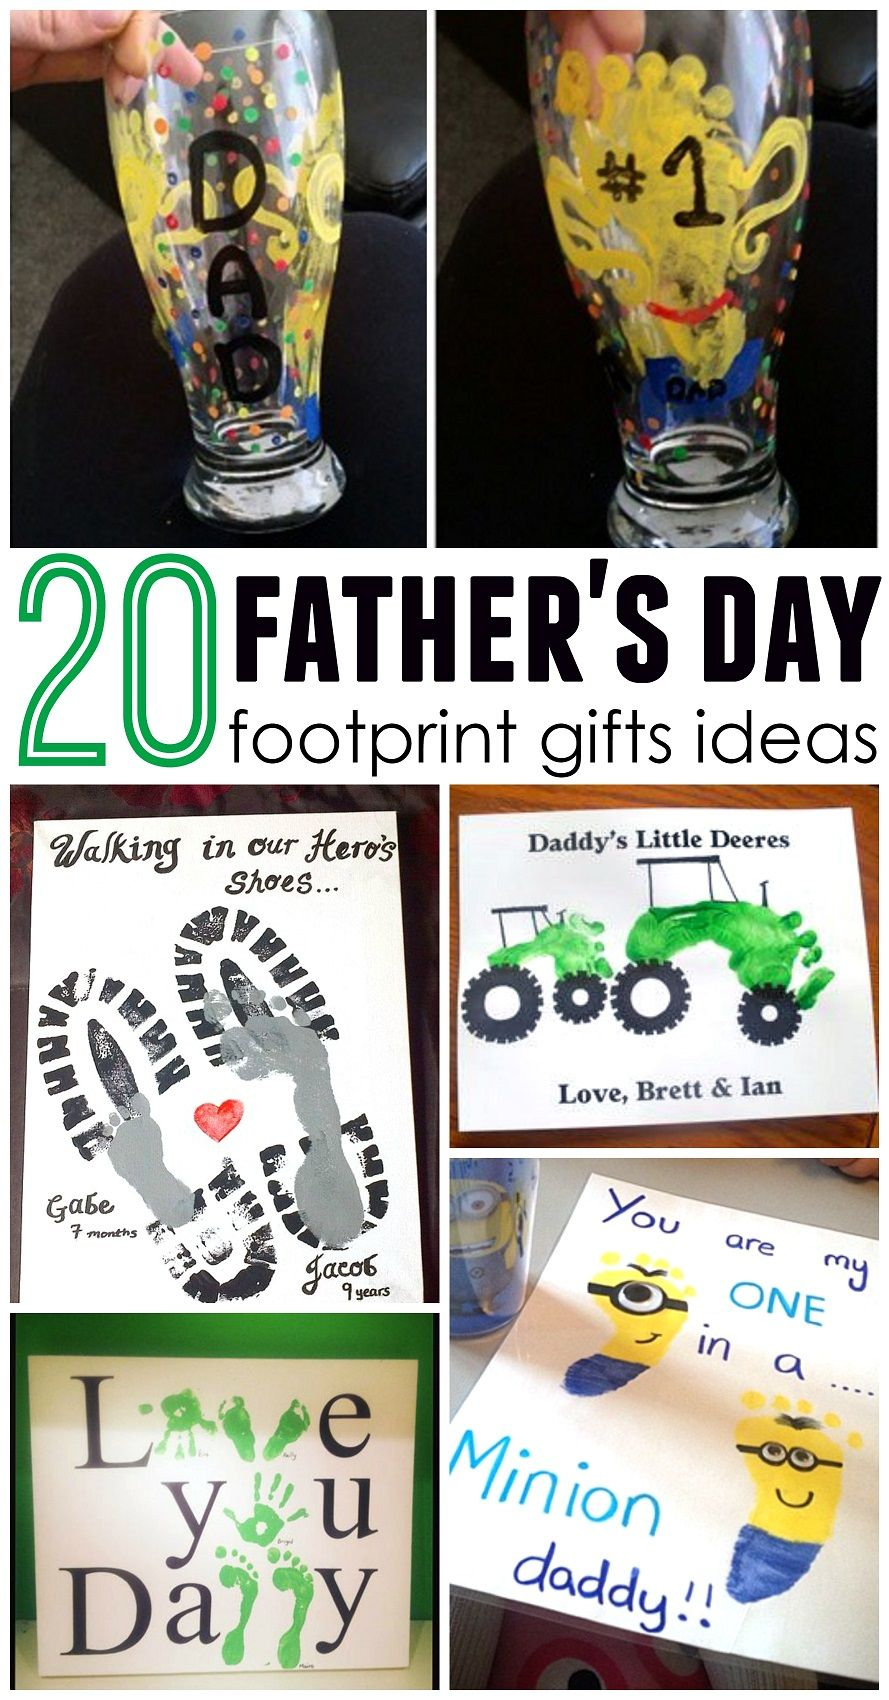 These Are Soo Cute Father S Day Footprint Gift Craft Ideas For The